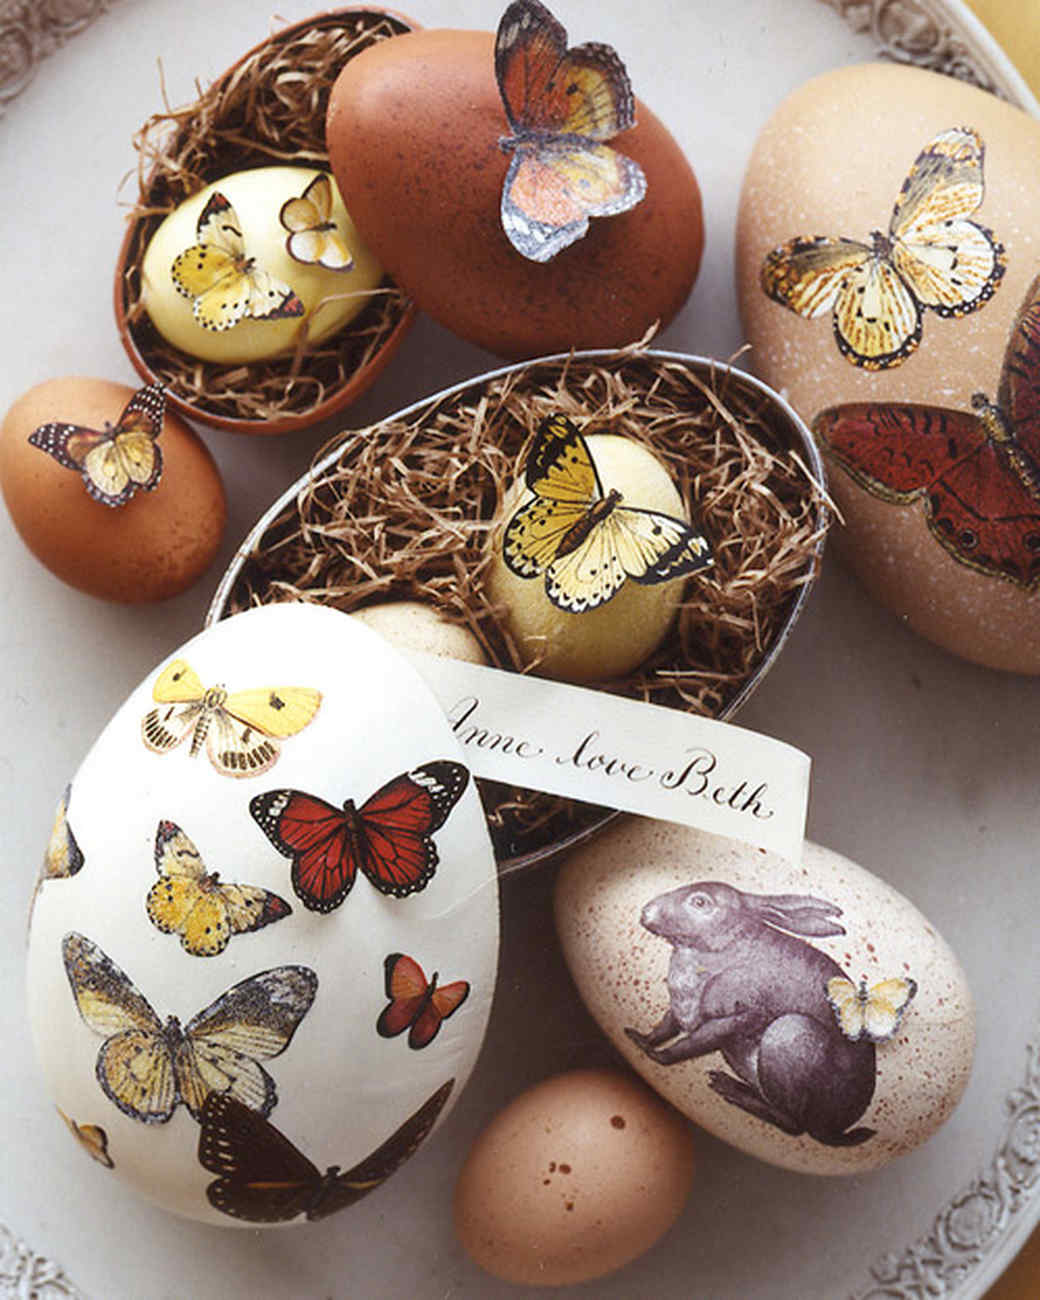 Give egg-shaped boxes a natural touch with speckled paint, butterflies, and a rabbit cut from decorative paper. To begin, cover work surface with scrap paper. Paint exterior of an egg-shaped papier-mache box with acrylic craft paint as desired. Mix equal parts of a contrasting-color paint and water in a bowl. Dip a toothbrush into thinned paint; shake off excess. With bristles facedown over box, draw the handle of a small brush across bristles to spray dots of paint. (Practice on scrap paper first.) Let dry. Cut out butterflies from decorative paper using small scissors. Attach a flat butterfly: Coat back of cut-out with Mod Podge using brush. Apply cutout to box; smooth using tip of brush handle. Let dry.Shop Now: Martha Stewart Confetti Glitter Acrylic Craft Paint, $5, michaels.com. Roylco Decorative Hues Paper, $21.34, target.com. Oval Paper Mache Boxes, $2.79, hobbylobby.com.